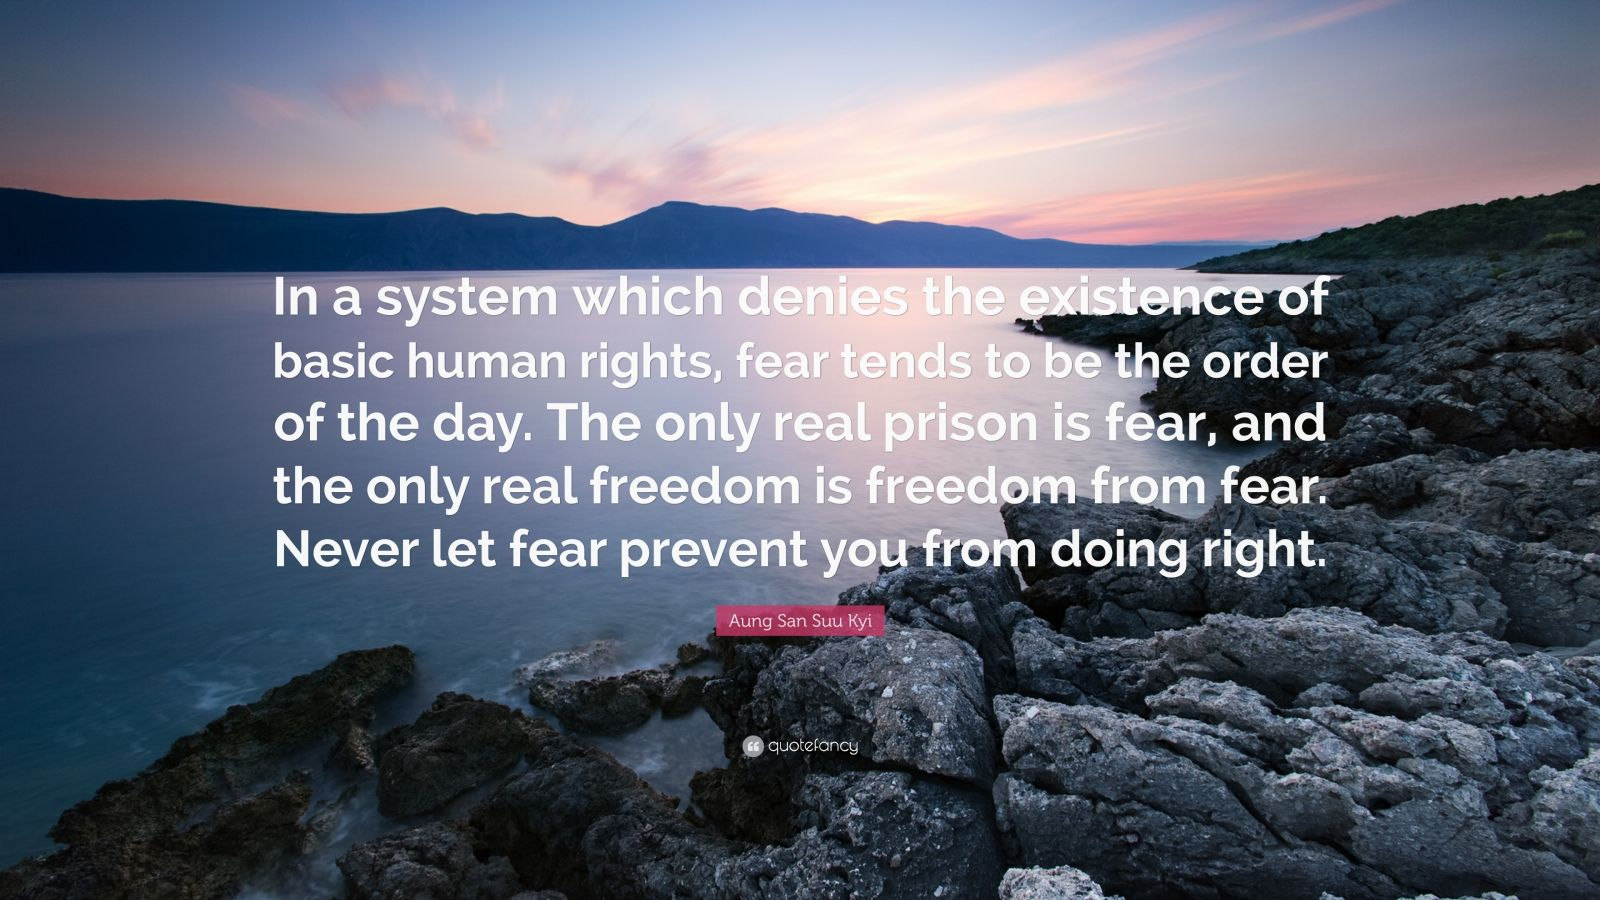 """Aung San Suu Kyi Quote: """"In a system which denies the existence of basic human rights, fear tends to be the order of the day. The only real prison is fear, and the only real freedom is freedom from fear. Never let fear prevent you from doing right."""""""